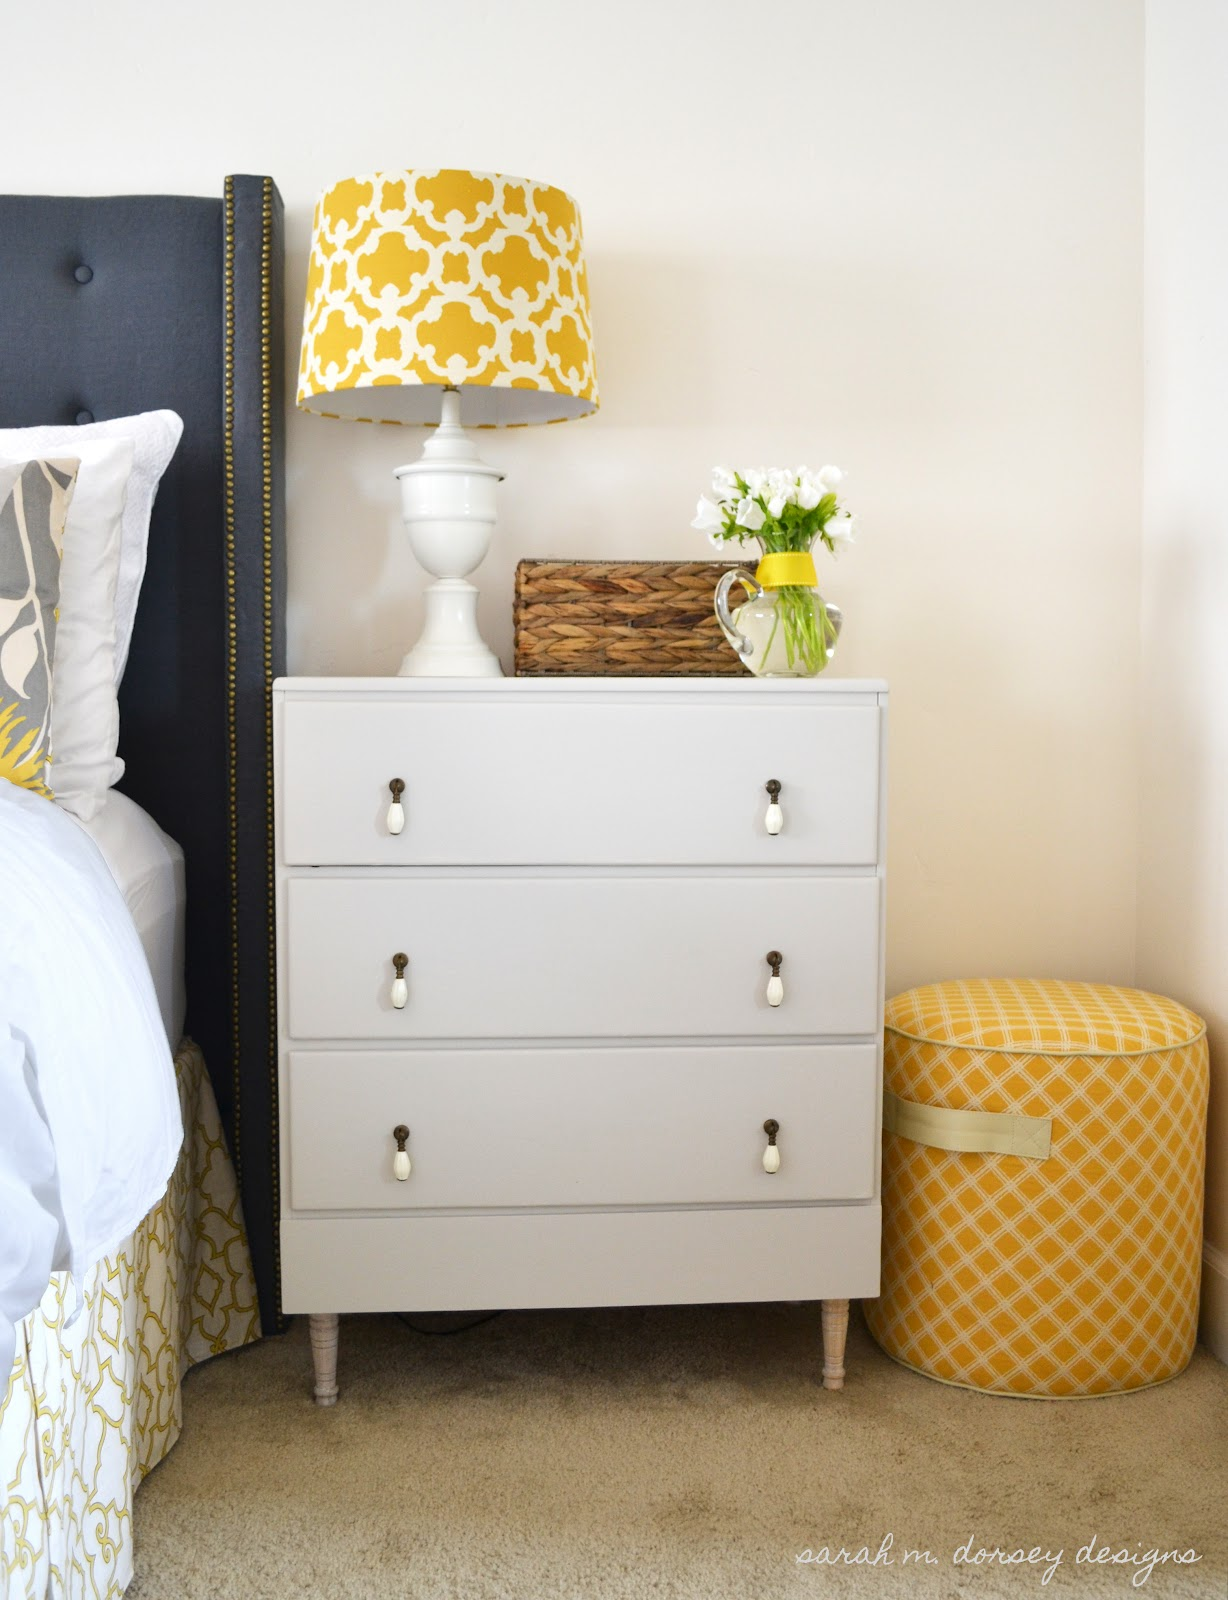 Elegant Check Out This Post To Read About The Dresser On The Other Side Of The Bed  (which I Will Be Painting The Same Color As This Dresser)